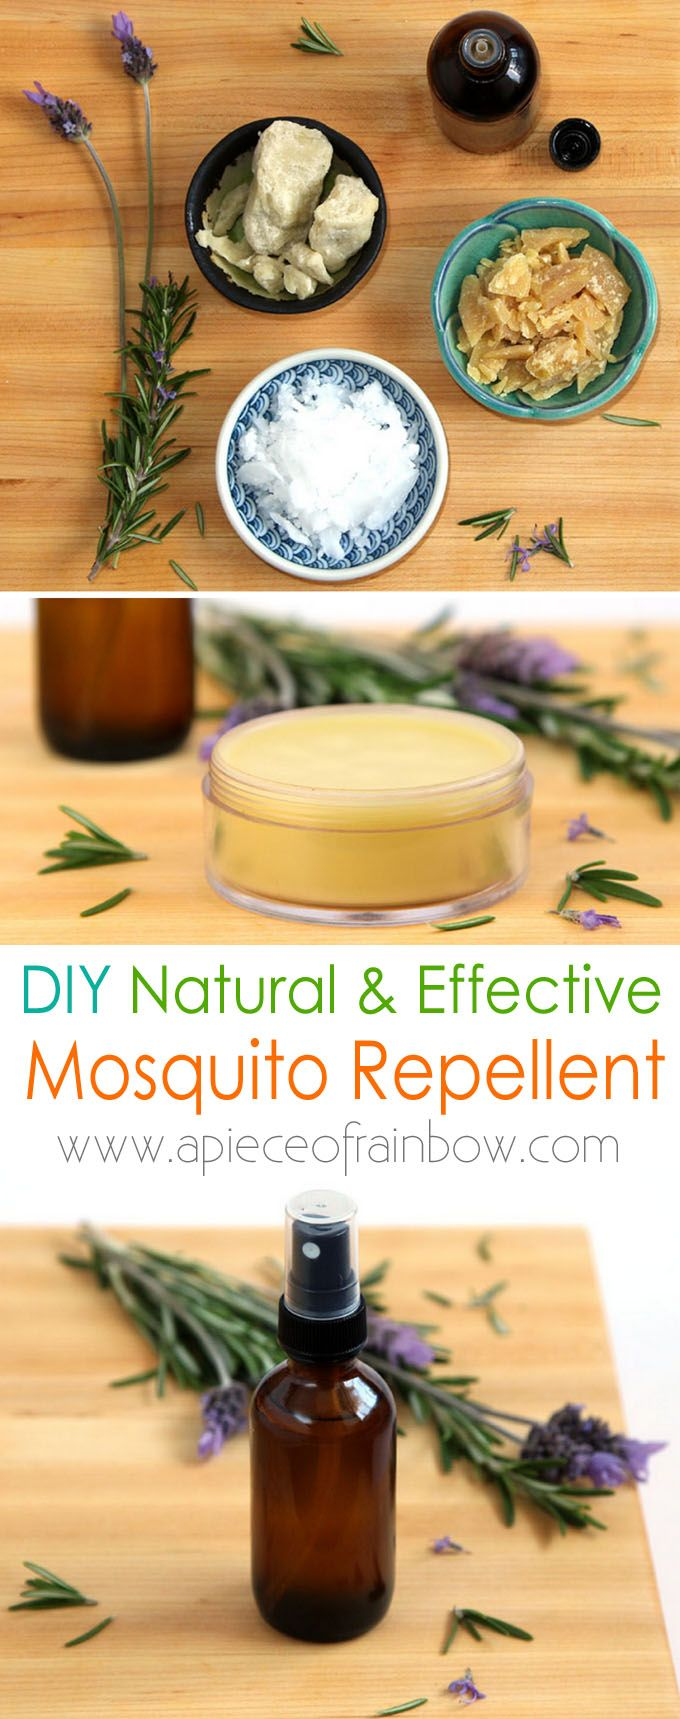 Two ways to make all natural mosquito repellent: a bug spray and a mosquito balm. Super easy to make and very effective! Tested while hiking in Florida!